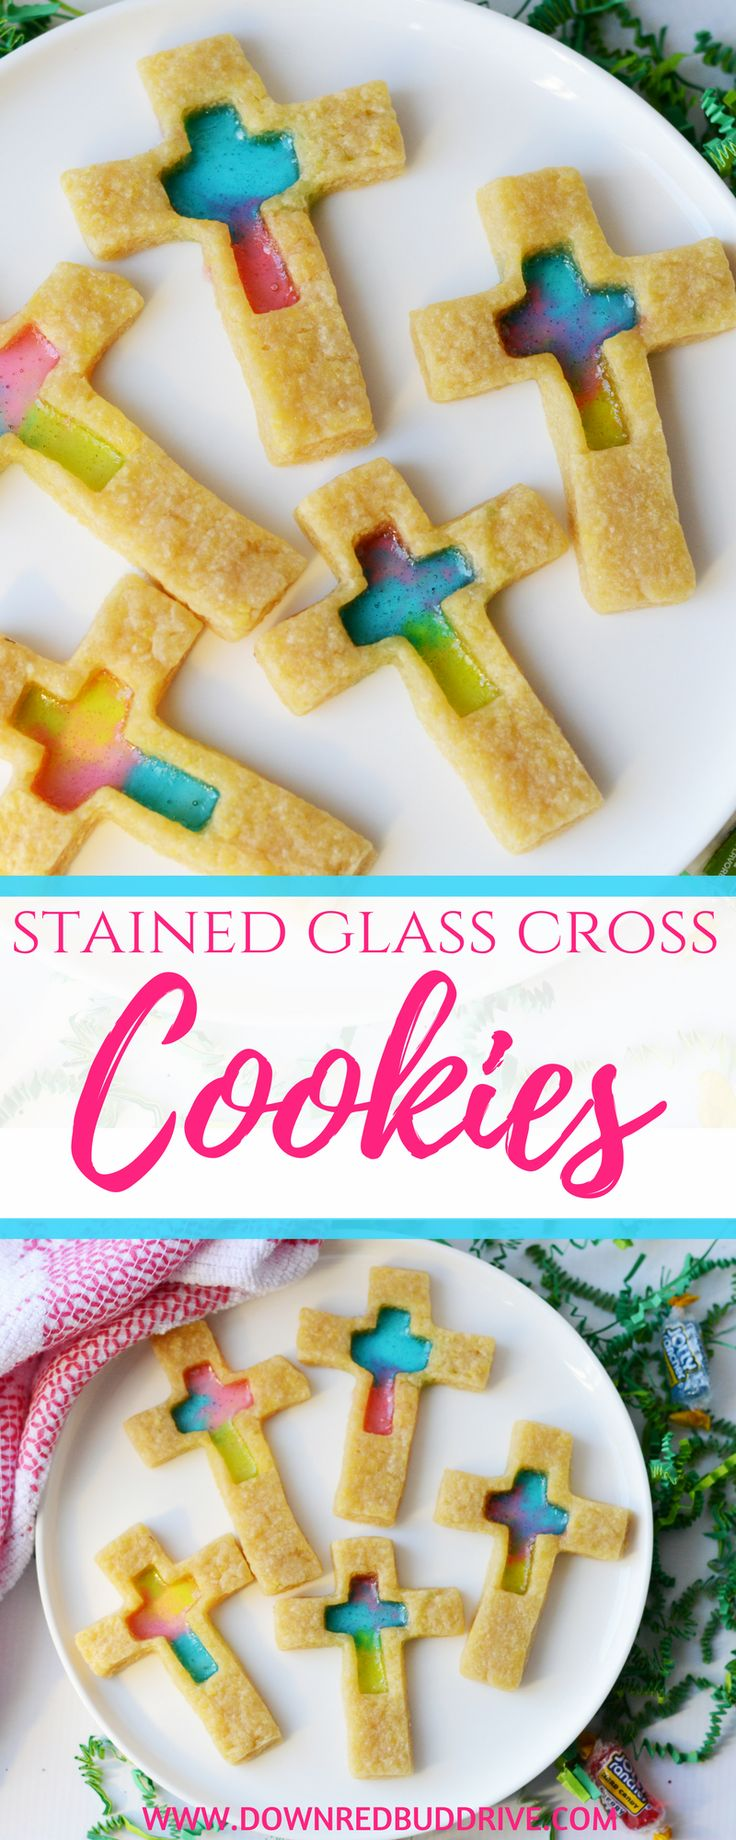 Stained Glass Cross Cookies   Stained Glass Cookies   Cross Cookies   Easter Cookies   Christian Cookies   Resurrection Sunday   Resurrection Sunday Cookies   Easter Dessert   Easter Food   Down Redbud Drive #crosscookies #stainedglasscookies #easterrecipe #baptism #resurrectionsunday